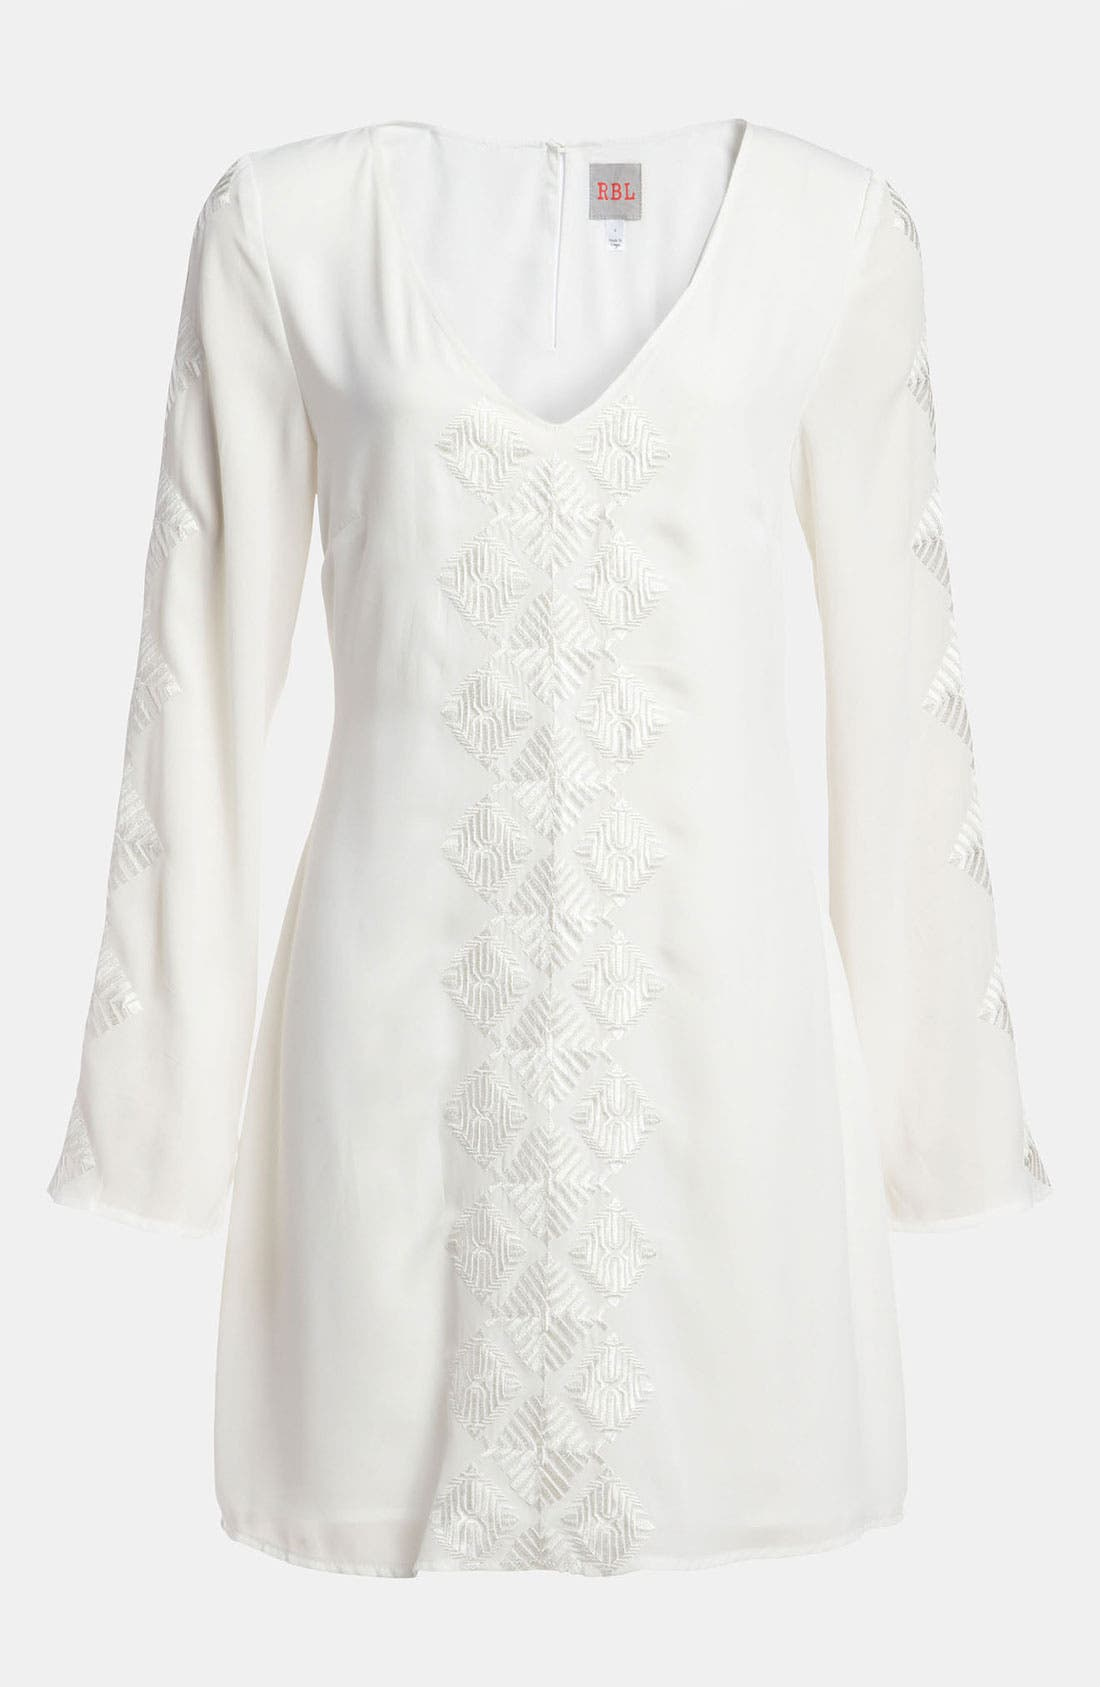 Main Image - RBL Embroidered Shift Dress